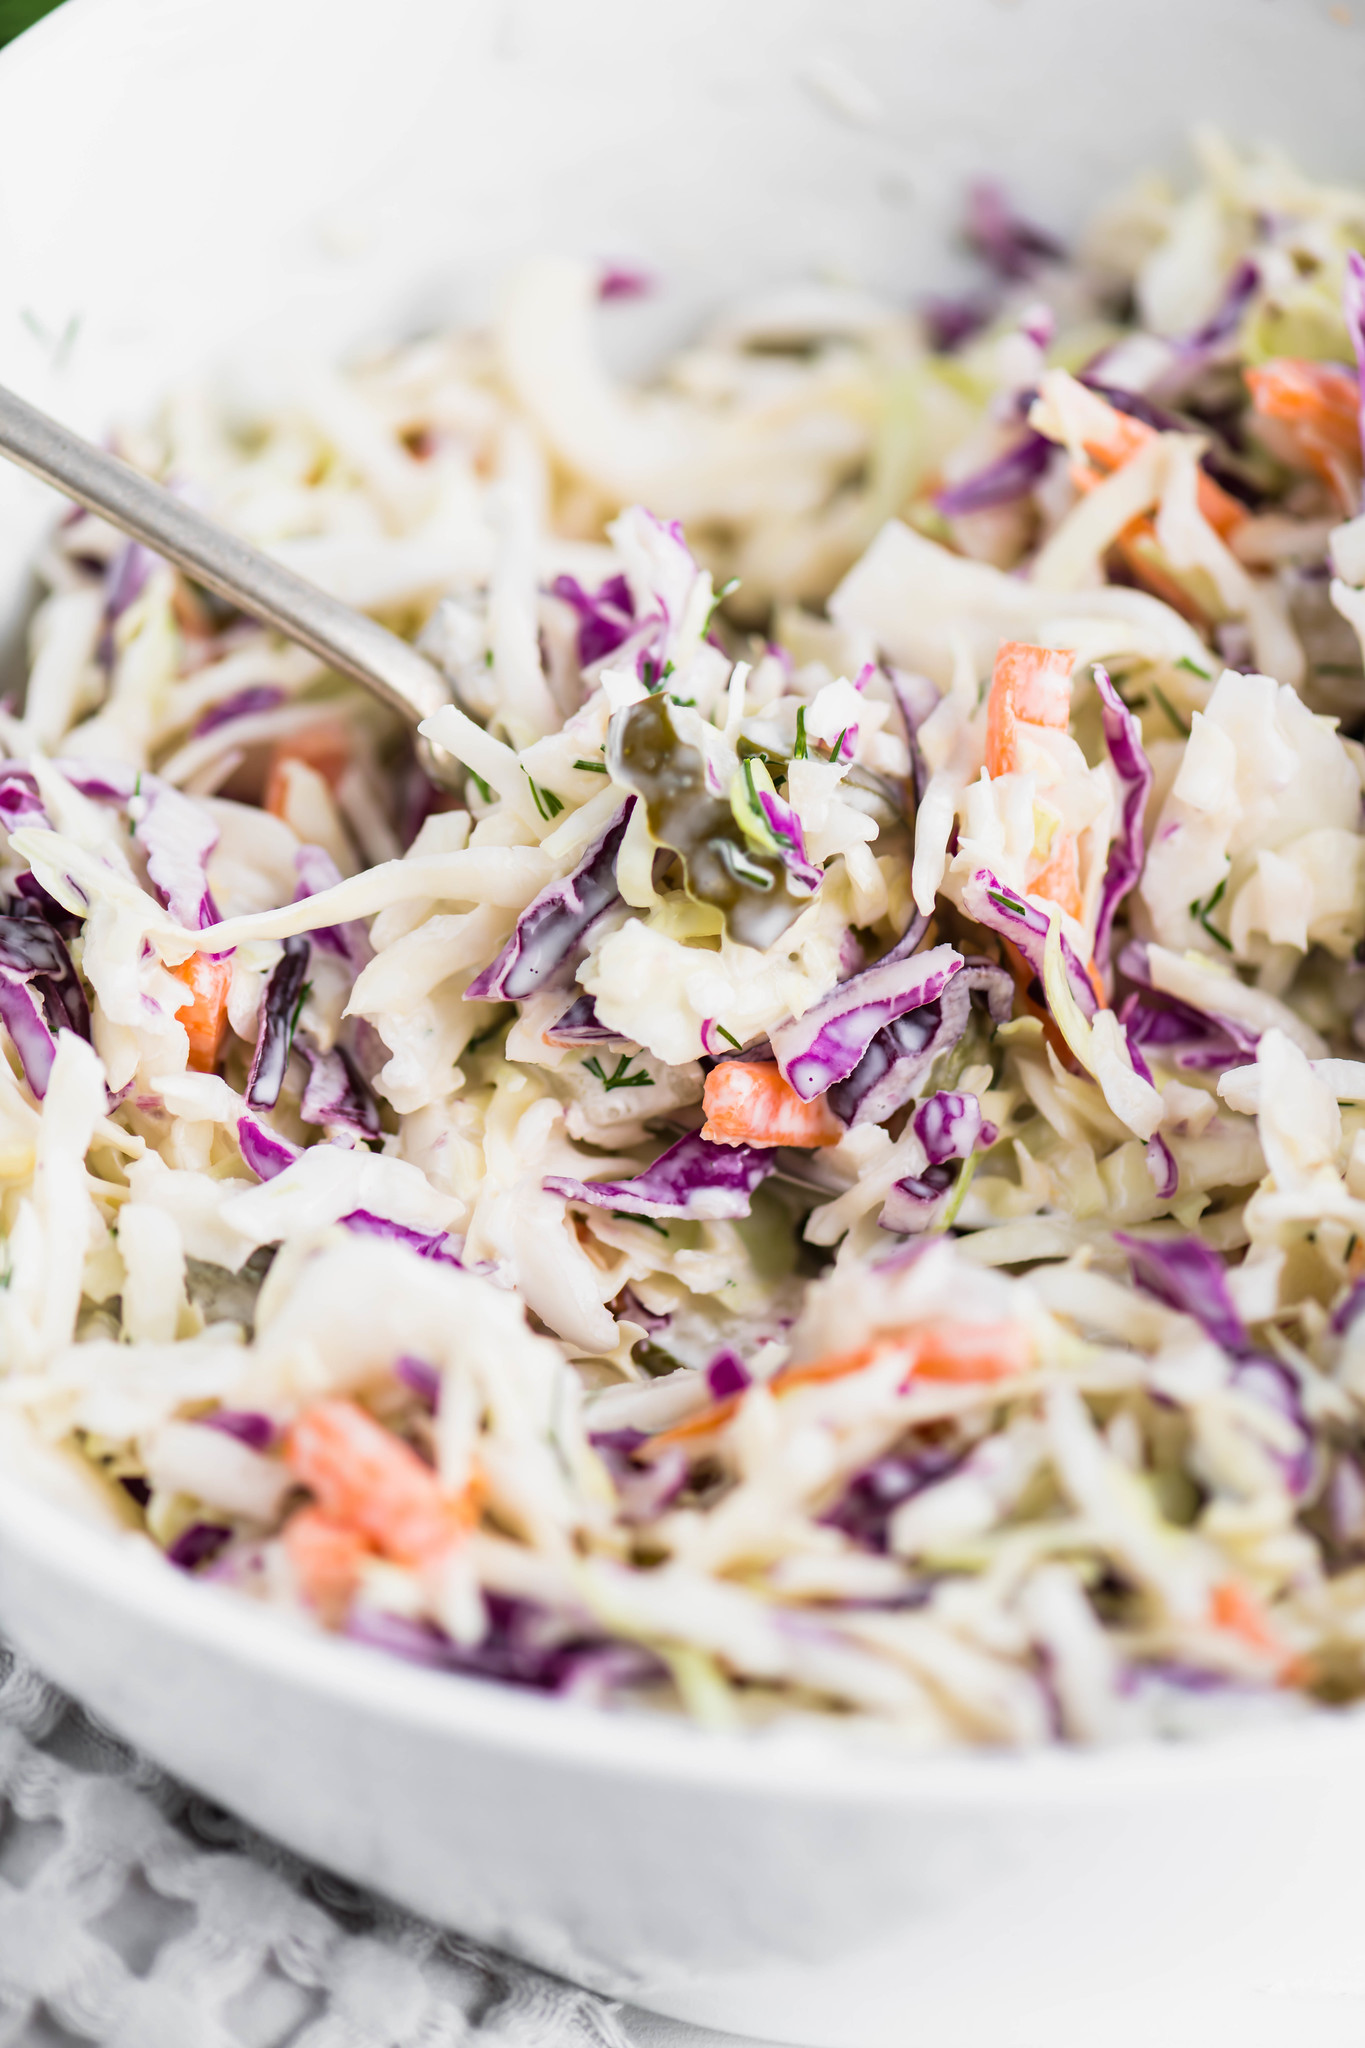 Change up your classic coleslaw with this Dill Pickle Coleslaw. Creamy dressing spiked with pickle juice, chopped pickles and fresh dill brings all the pickle flavor.